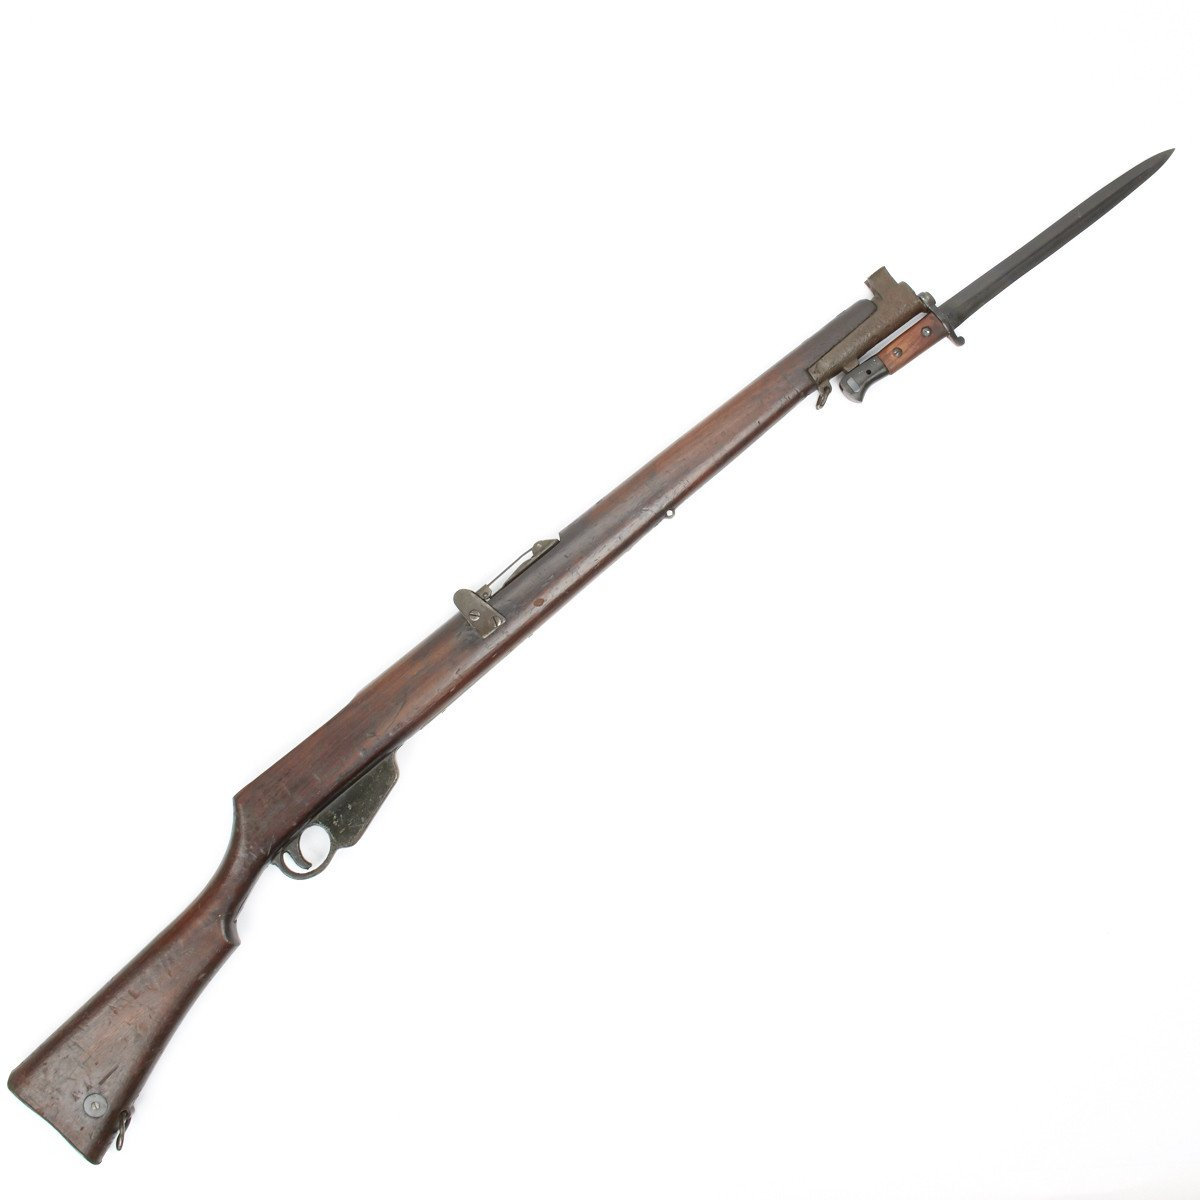 Original British WWI Lee-Enfield SMLE No 1 Dummy Training Rifle with